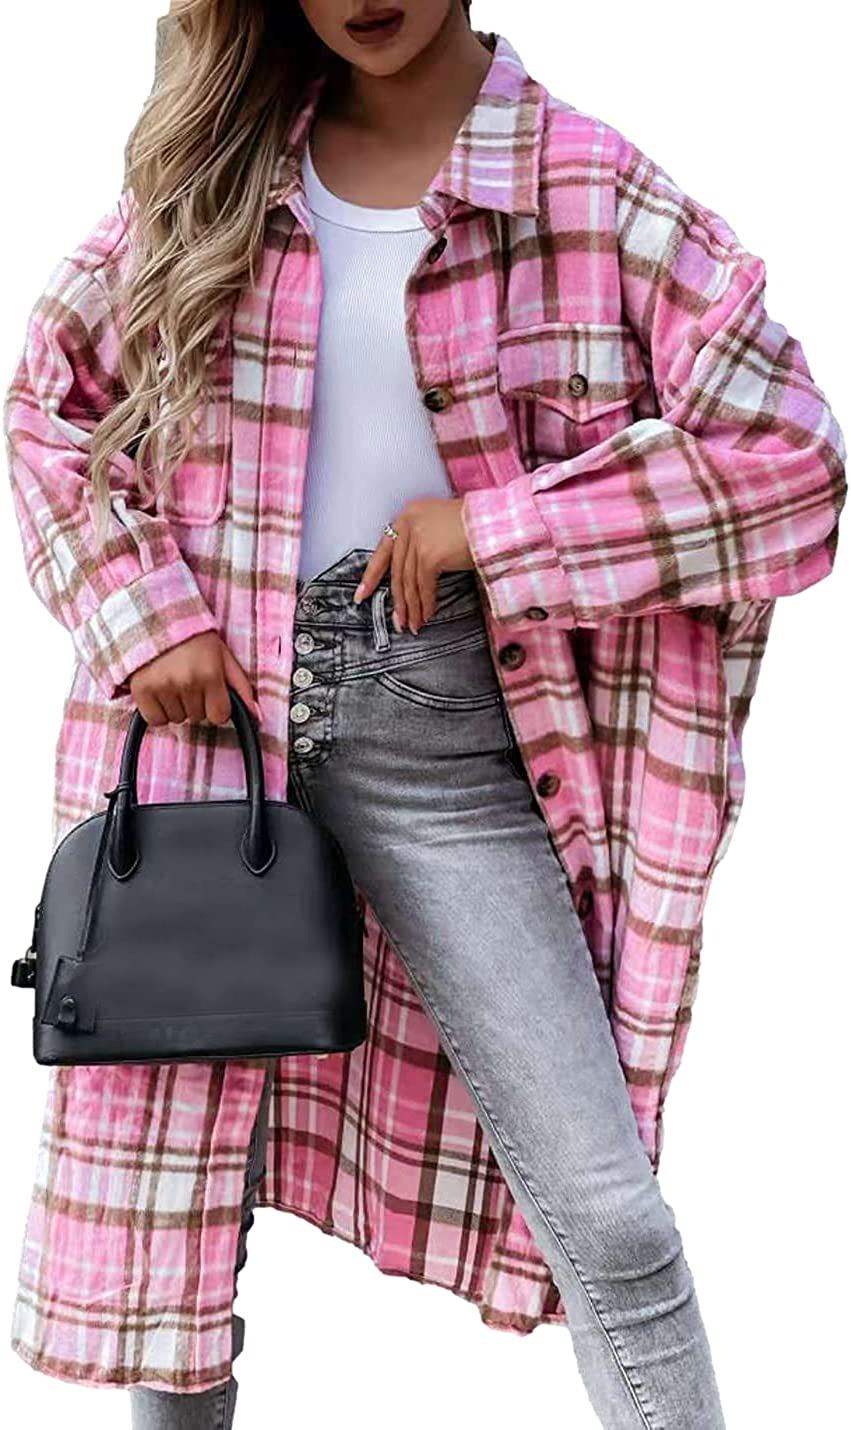 FindThy Women's Casual Plaid Coat Lapel Woolen Button Up Pocketed Long Shacket Winter Coats